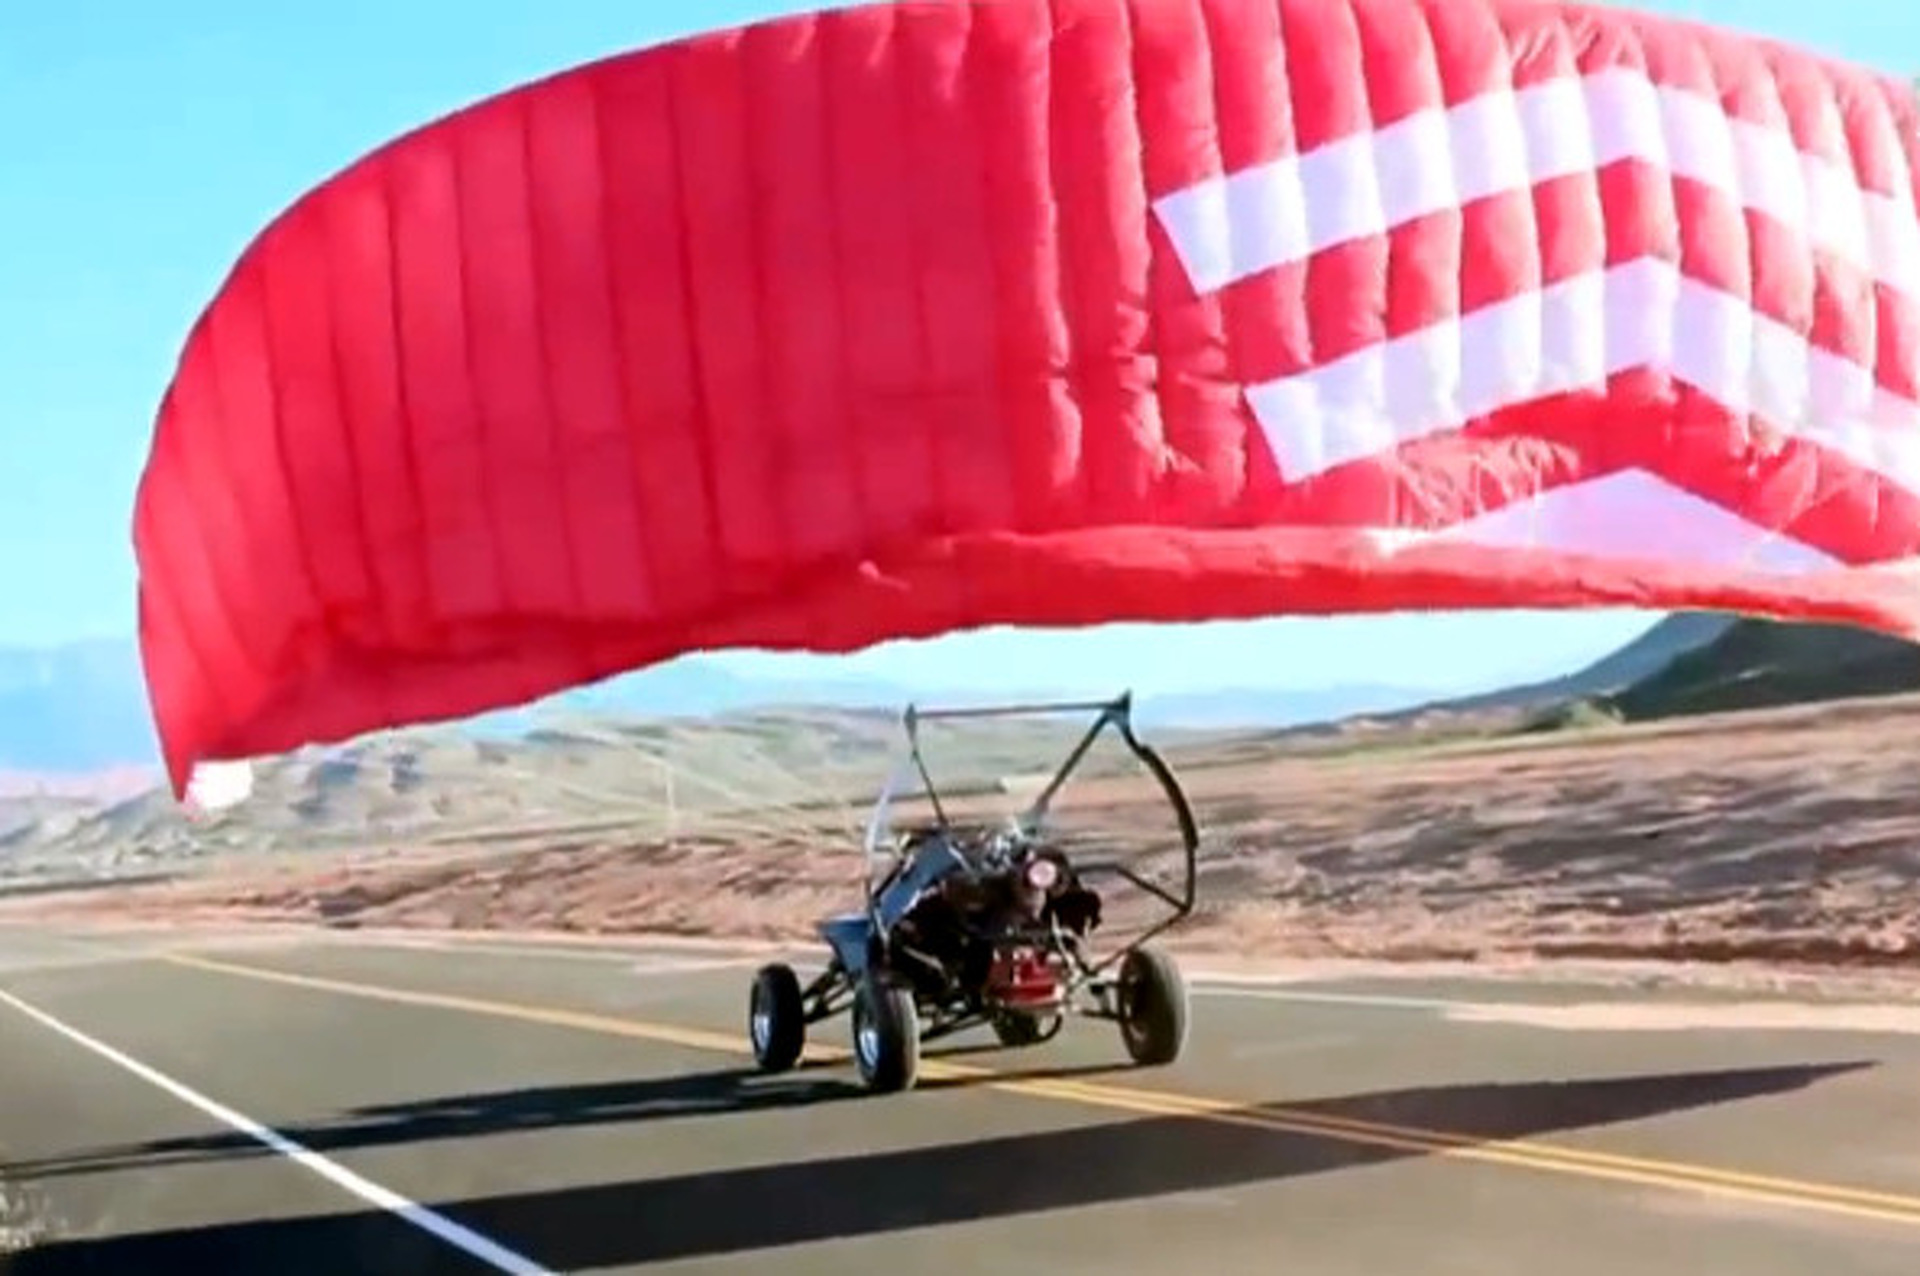 SkyRunner is Part-Dune Buggy, Part-Flying Car, All-Awesome [w/ video]